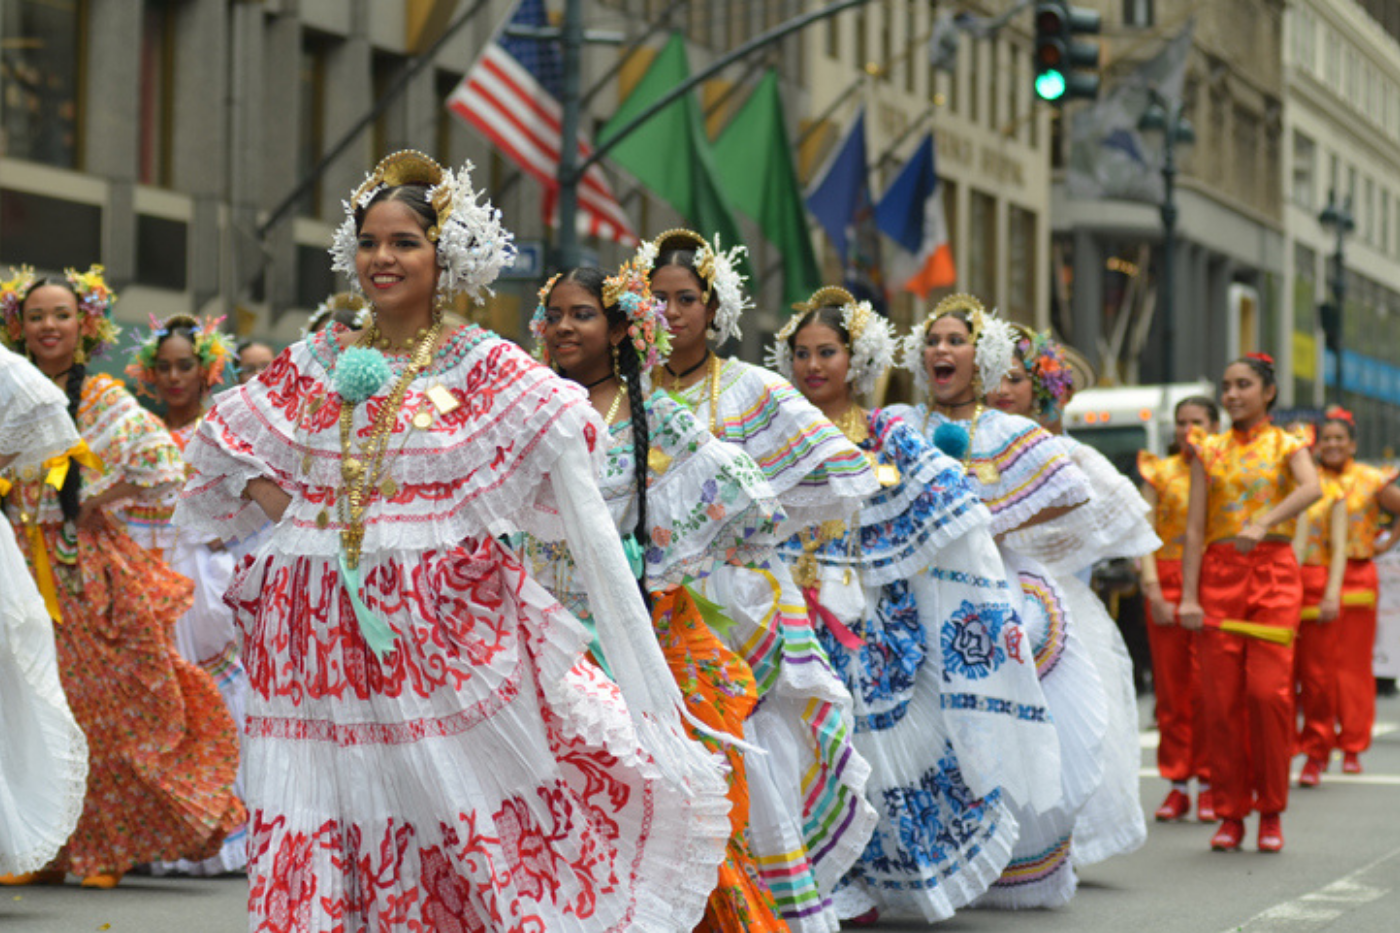 """David Hayes-Bautista in Penn State News: """"Events celebrate National Hispanic Heritage Month at Penn State"""""""